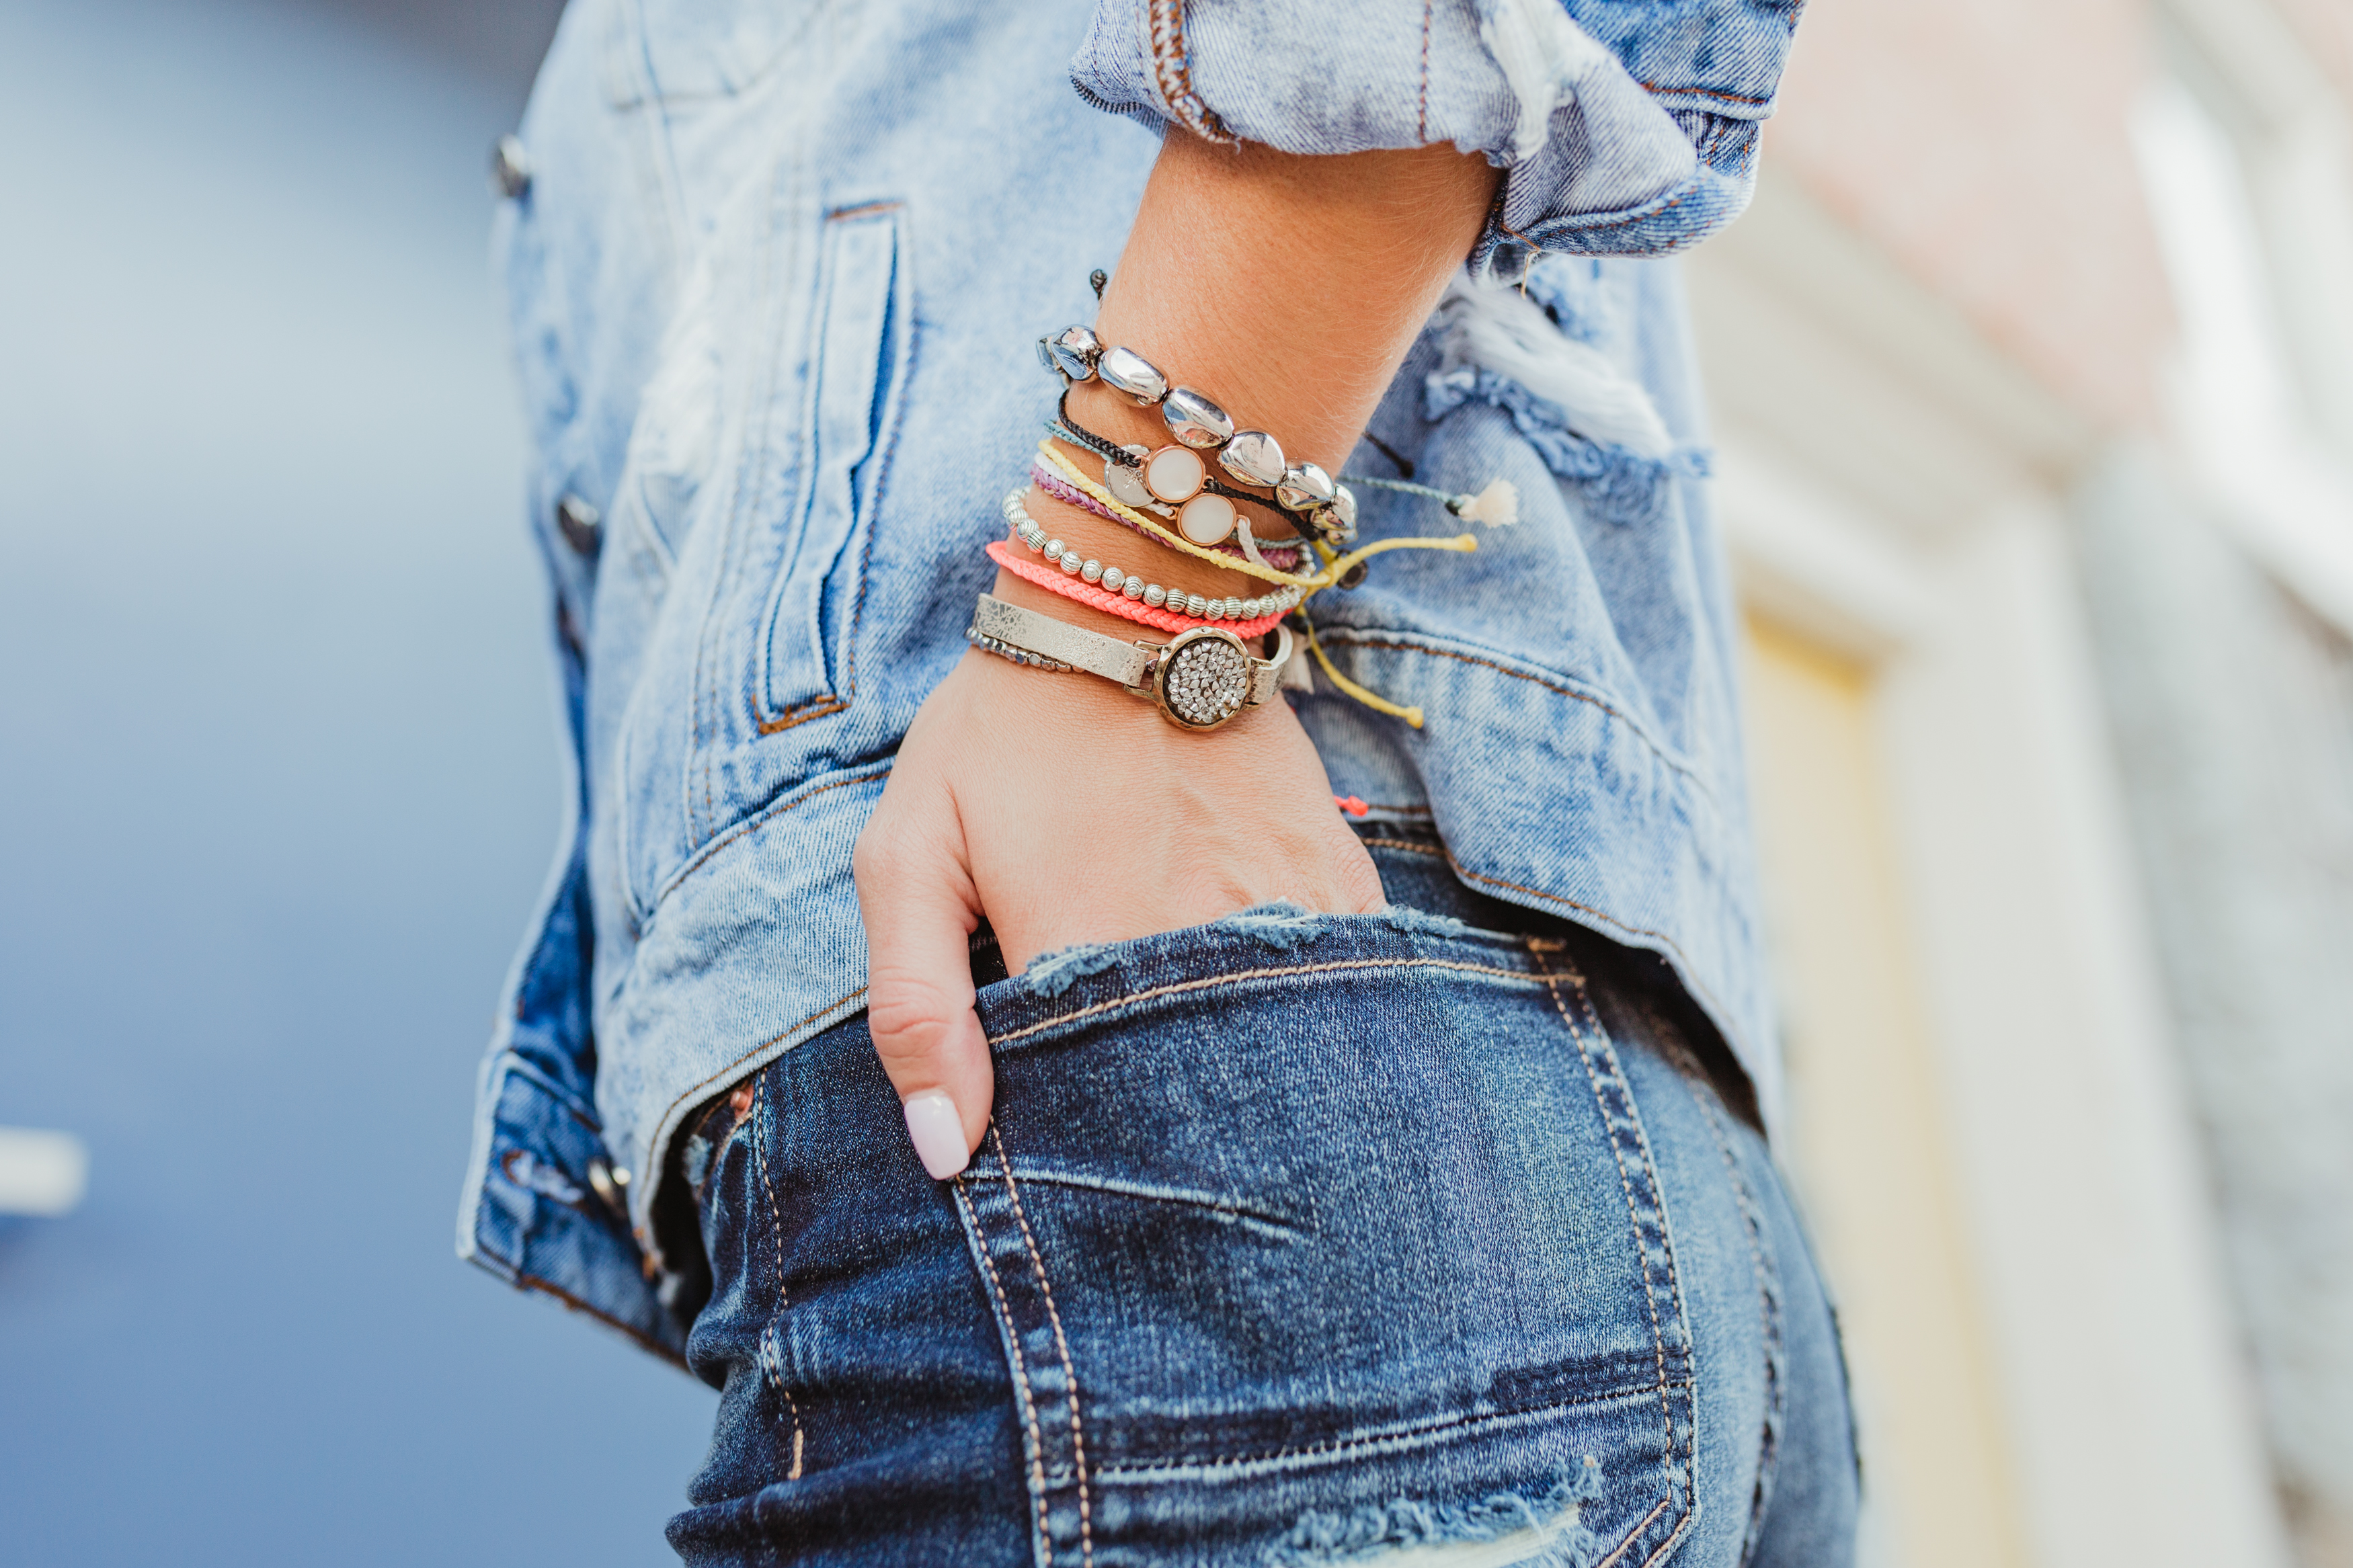 did someone say arm party? We love the way we can mix and match give back brands like Pura Vida with a little glam from BKE